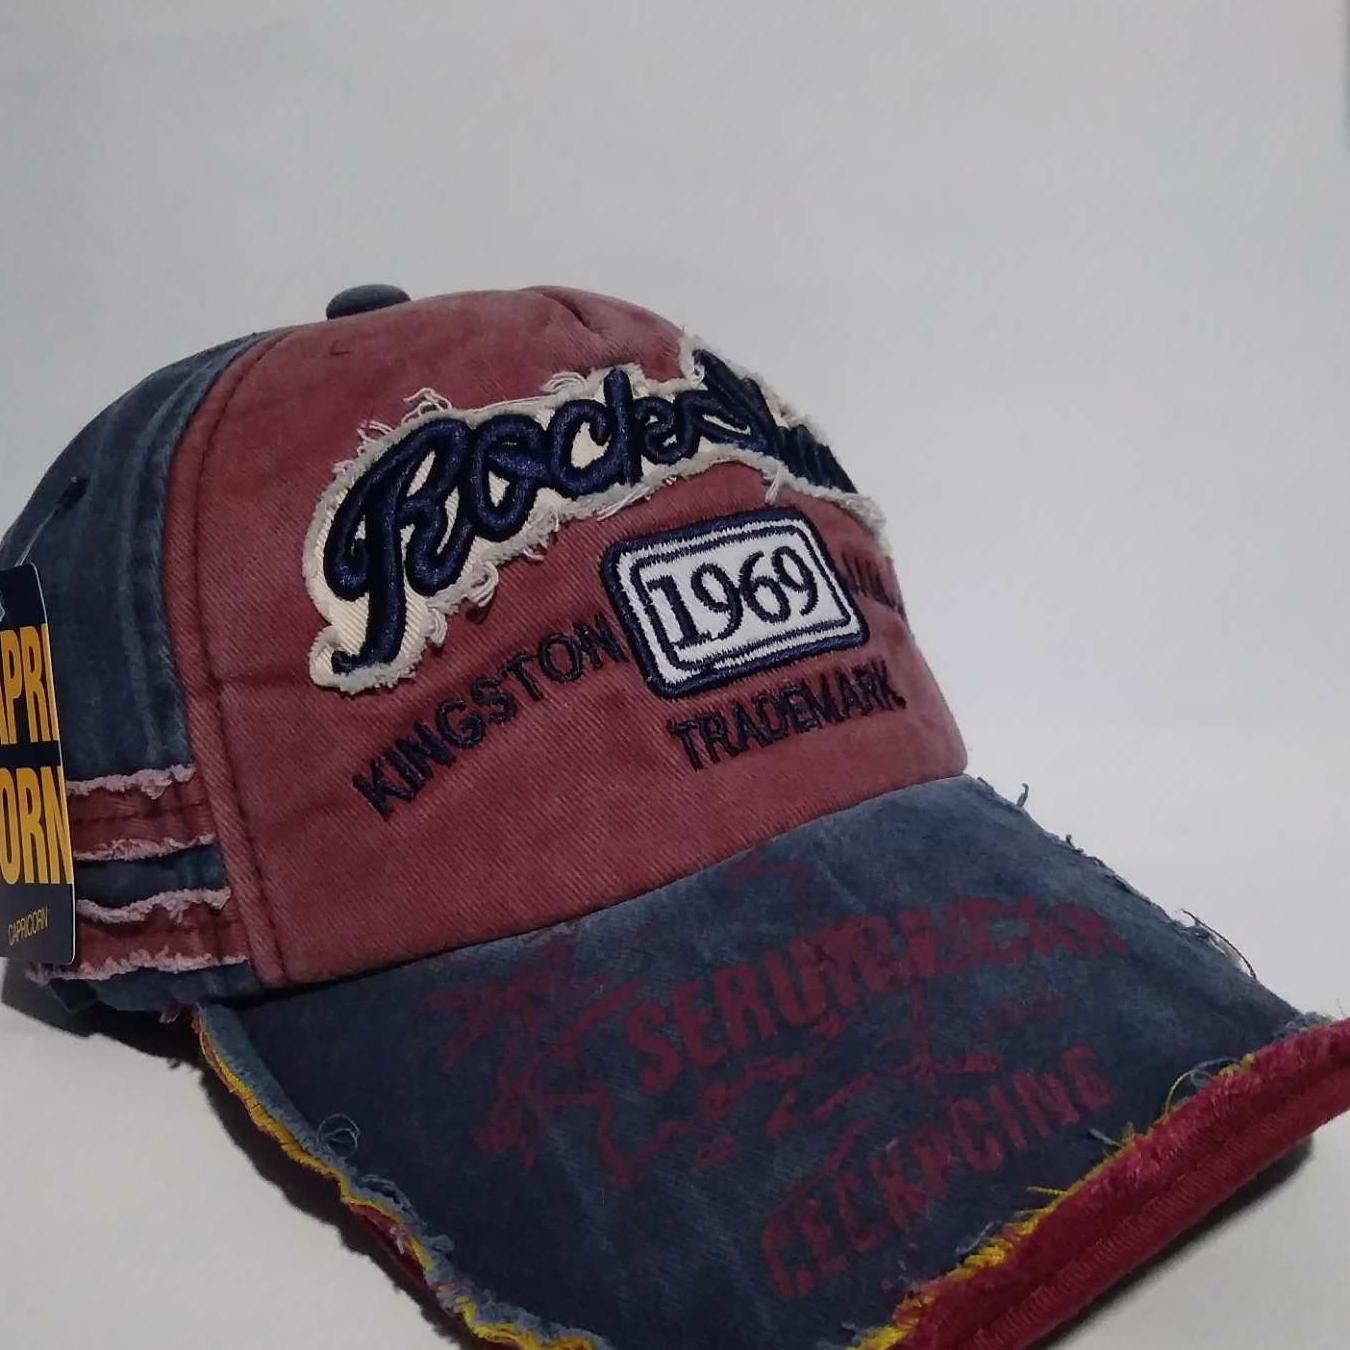 Topi pria bassball import RockShanle kingston 1969 jamaica